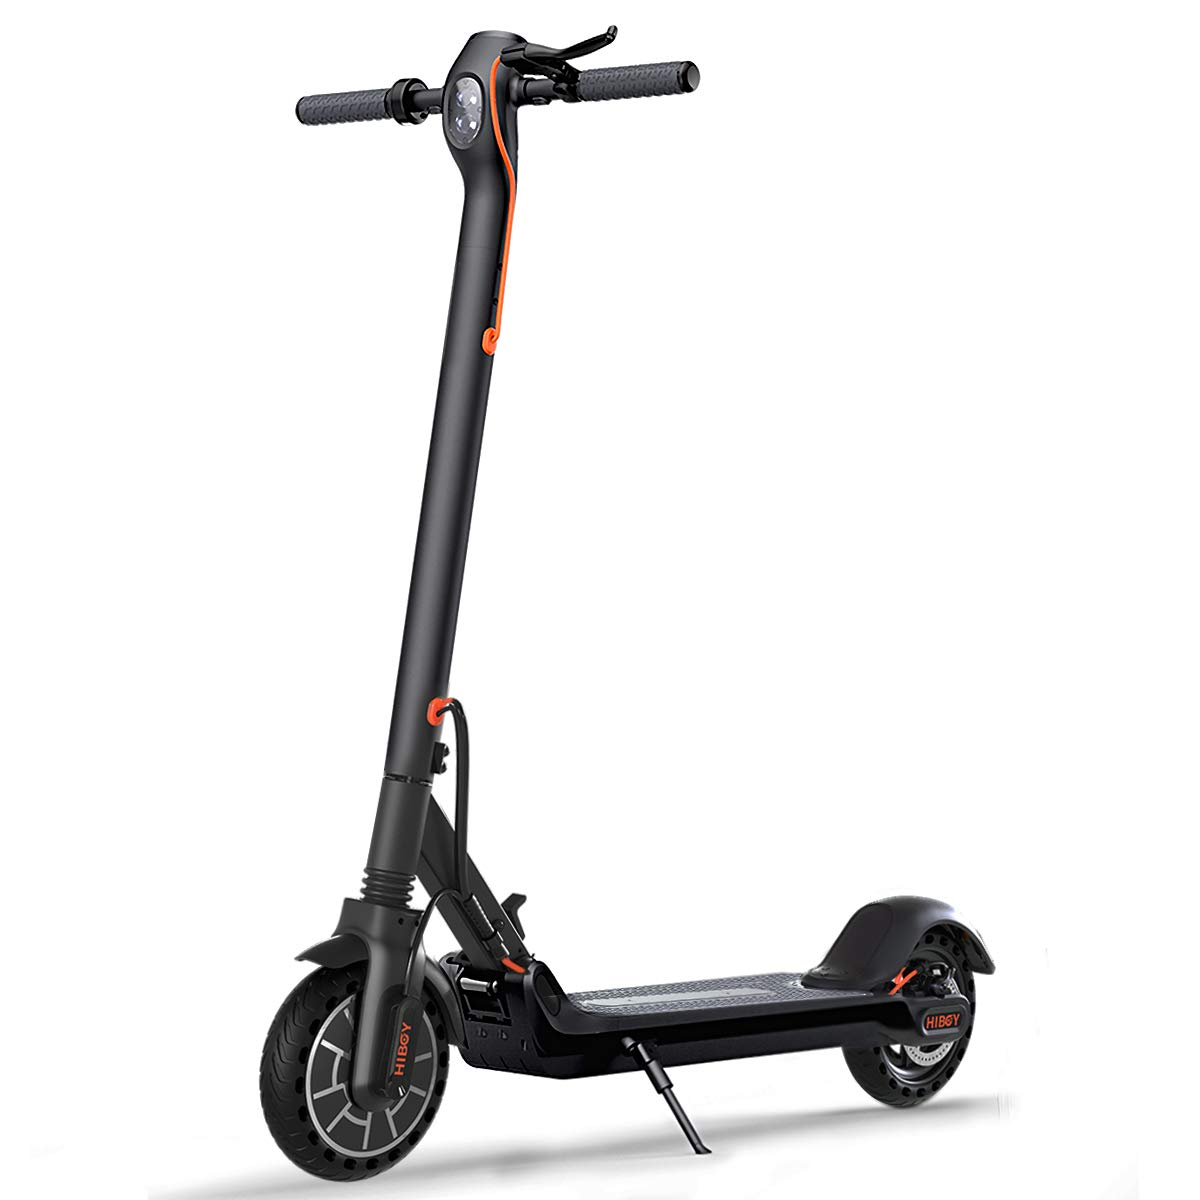 Hiboy MAX Electric Scooter - 350W Motor 8.5'' Solid Tires Up to 17 Miles & 18.6 MPH One-Step Fold, Adult Electric Scooter for Commute and Travel by Hiboy